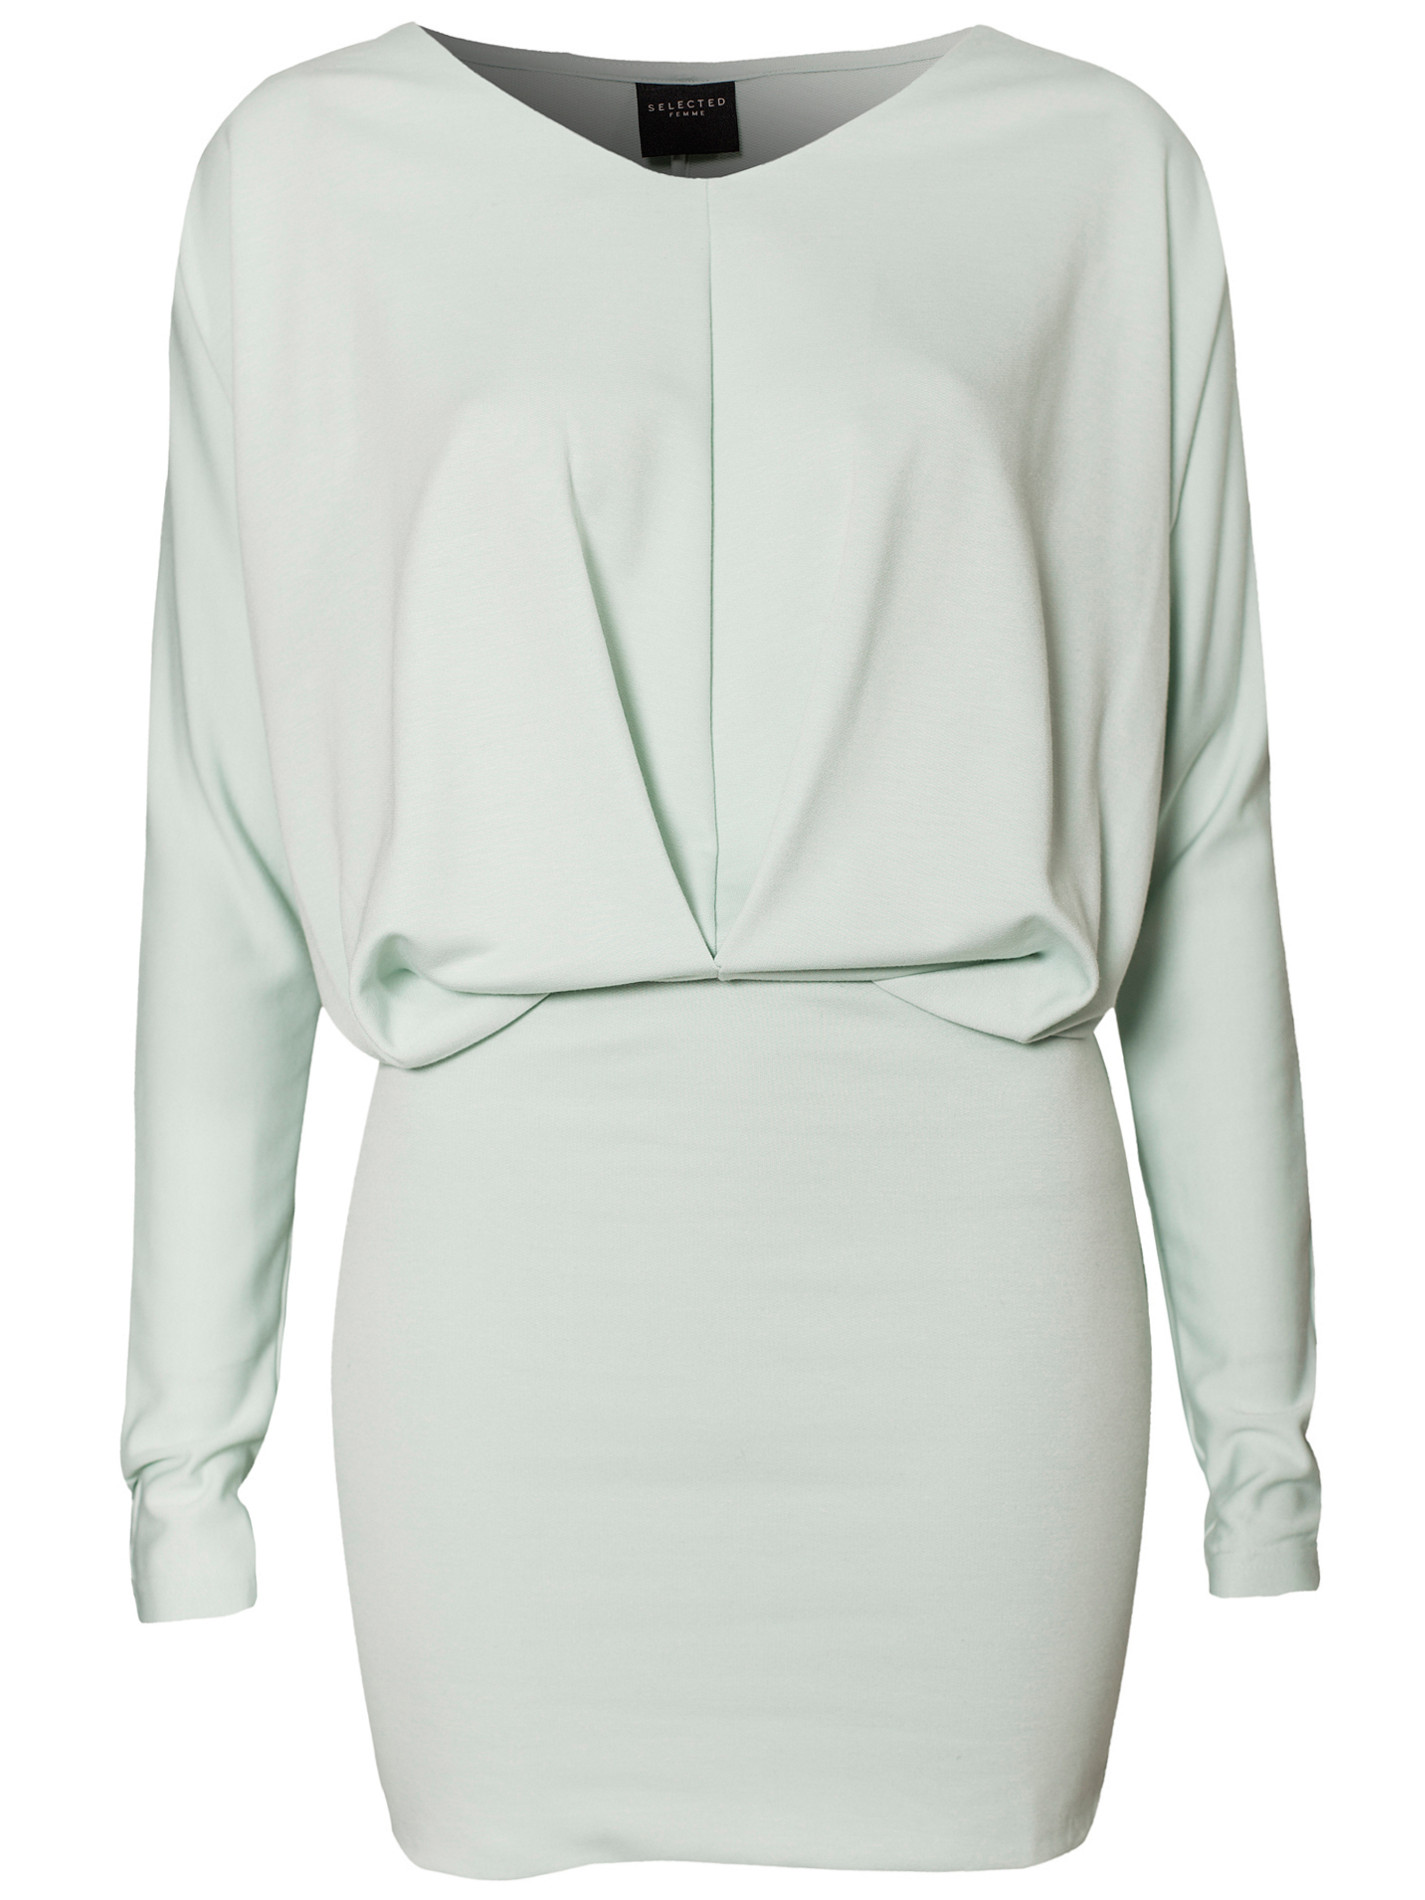 7. Selected Femme, 599 kronor